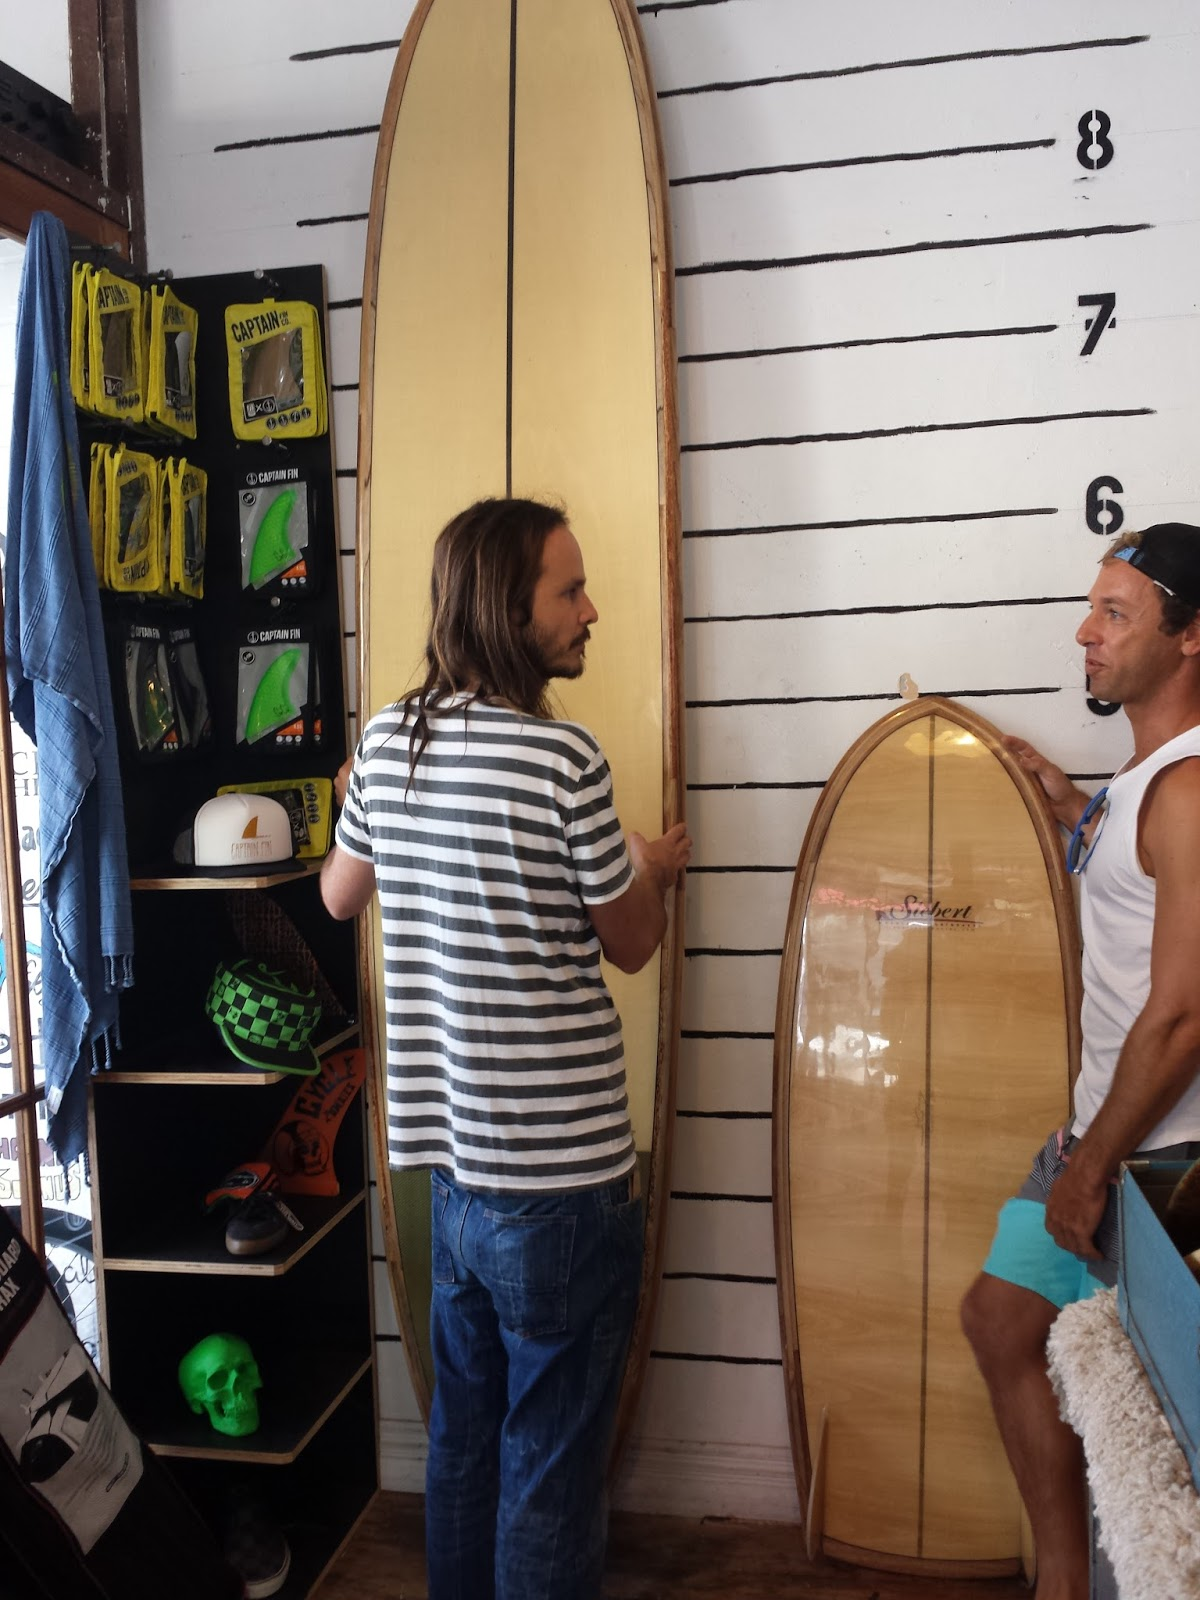 26-03-2016-australia-siebert-surfboards-05